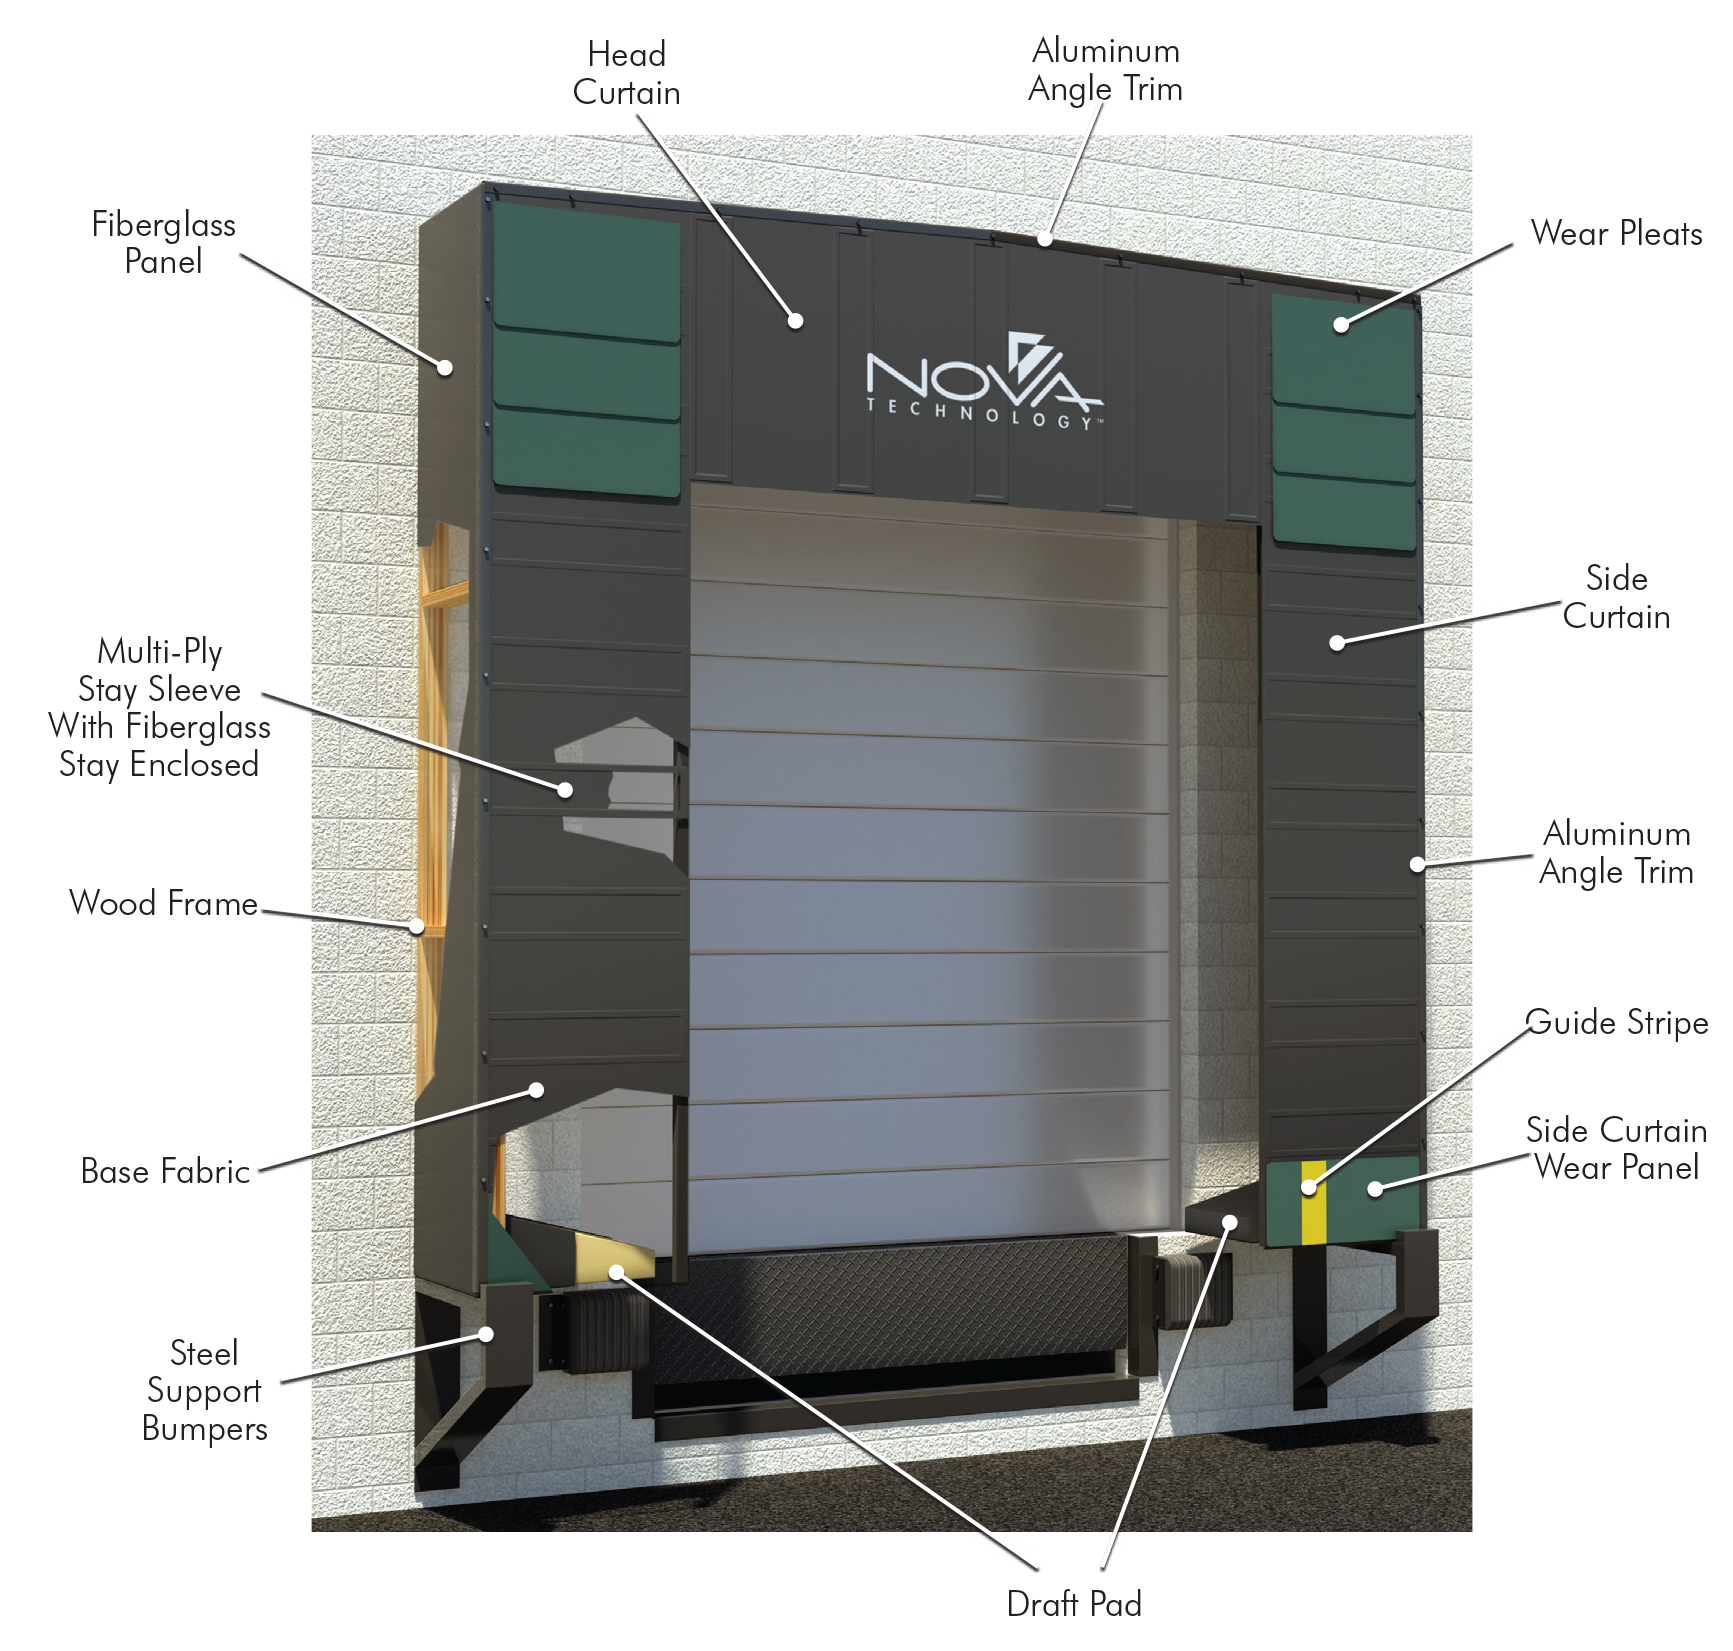 DESIGNED FOR DOOR OPENINGS UP TO 12 FT WIDE X 12 FT HIGH AND HIGHER DOORS RF Series Dock Shelter\u2014provides maximum dock protection and full\u2026 Read more »  sc 1 st  Nova Technology & Dock Seals \u0026 Shelters Archives - Nova Technology